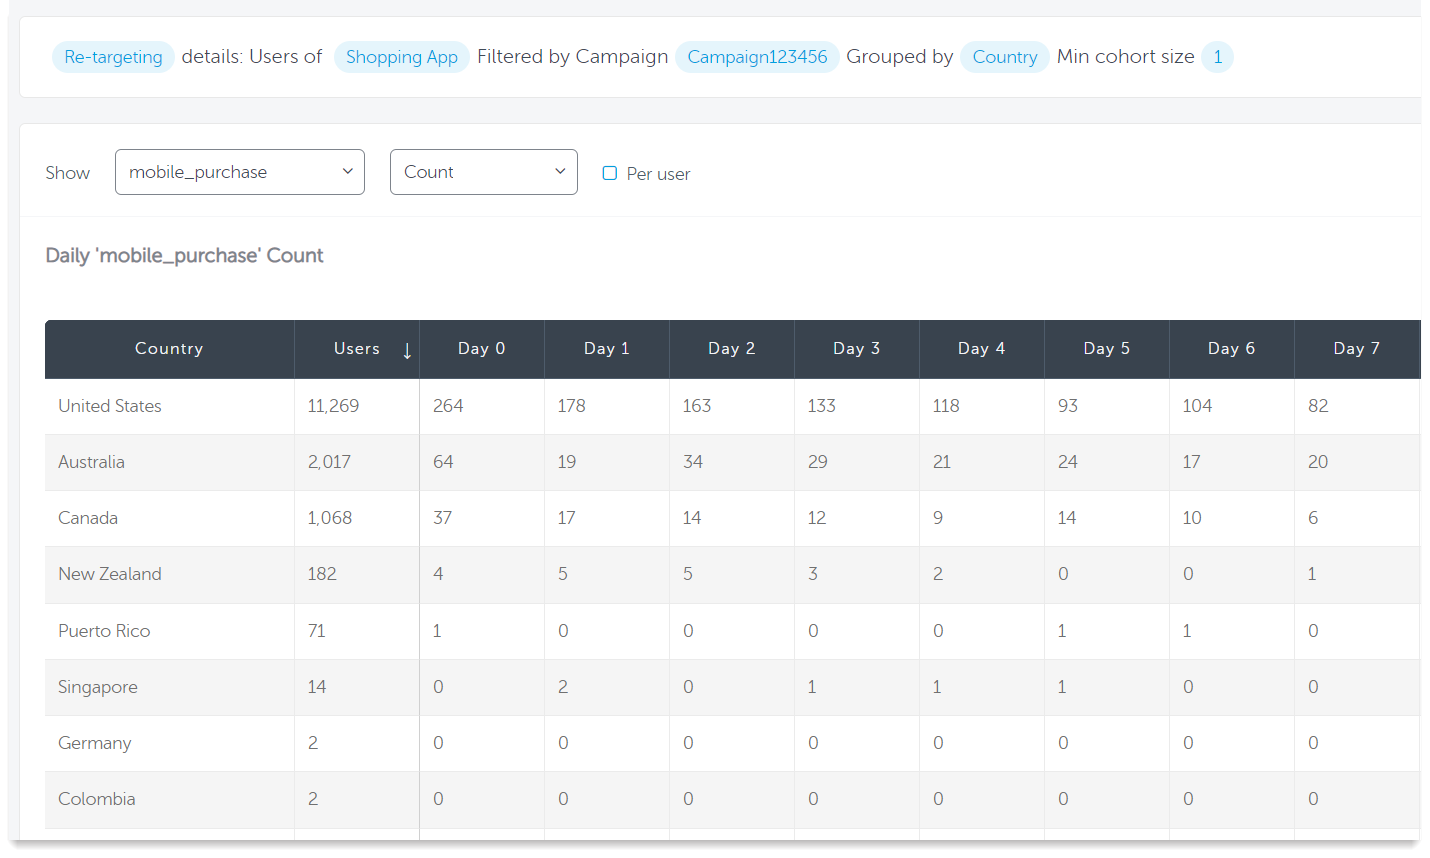 AppsFlyer Cohort report for shopping app retargeting campaign grouped by country